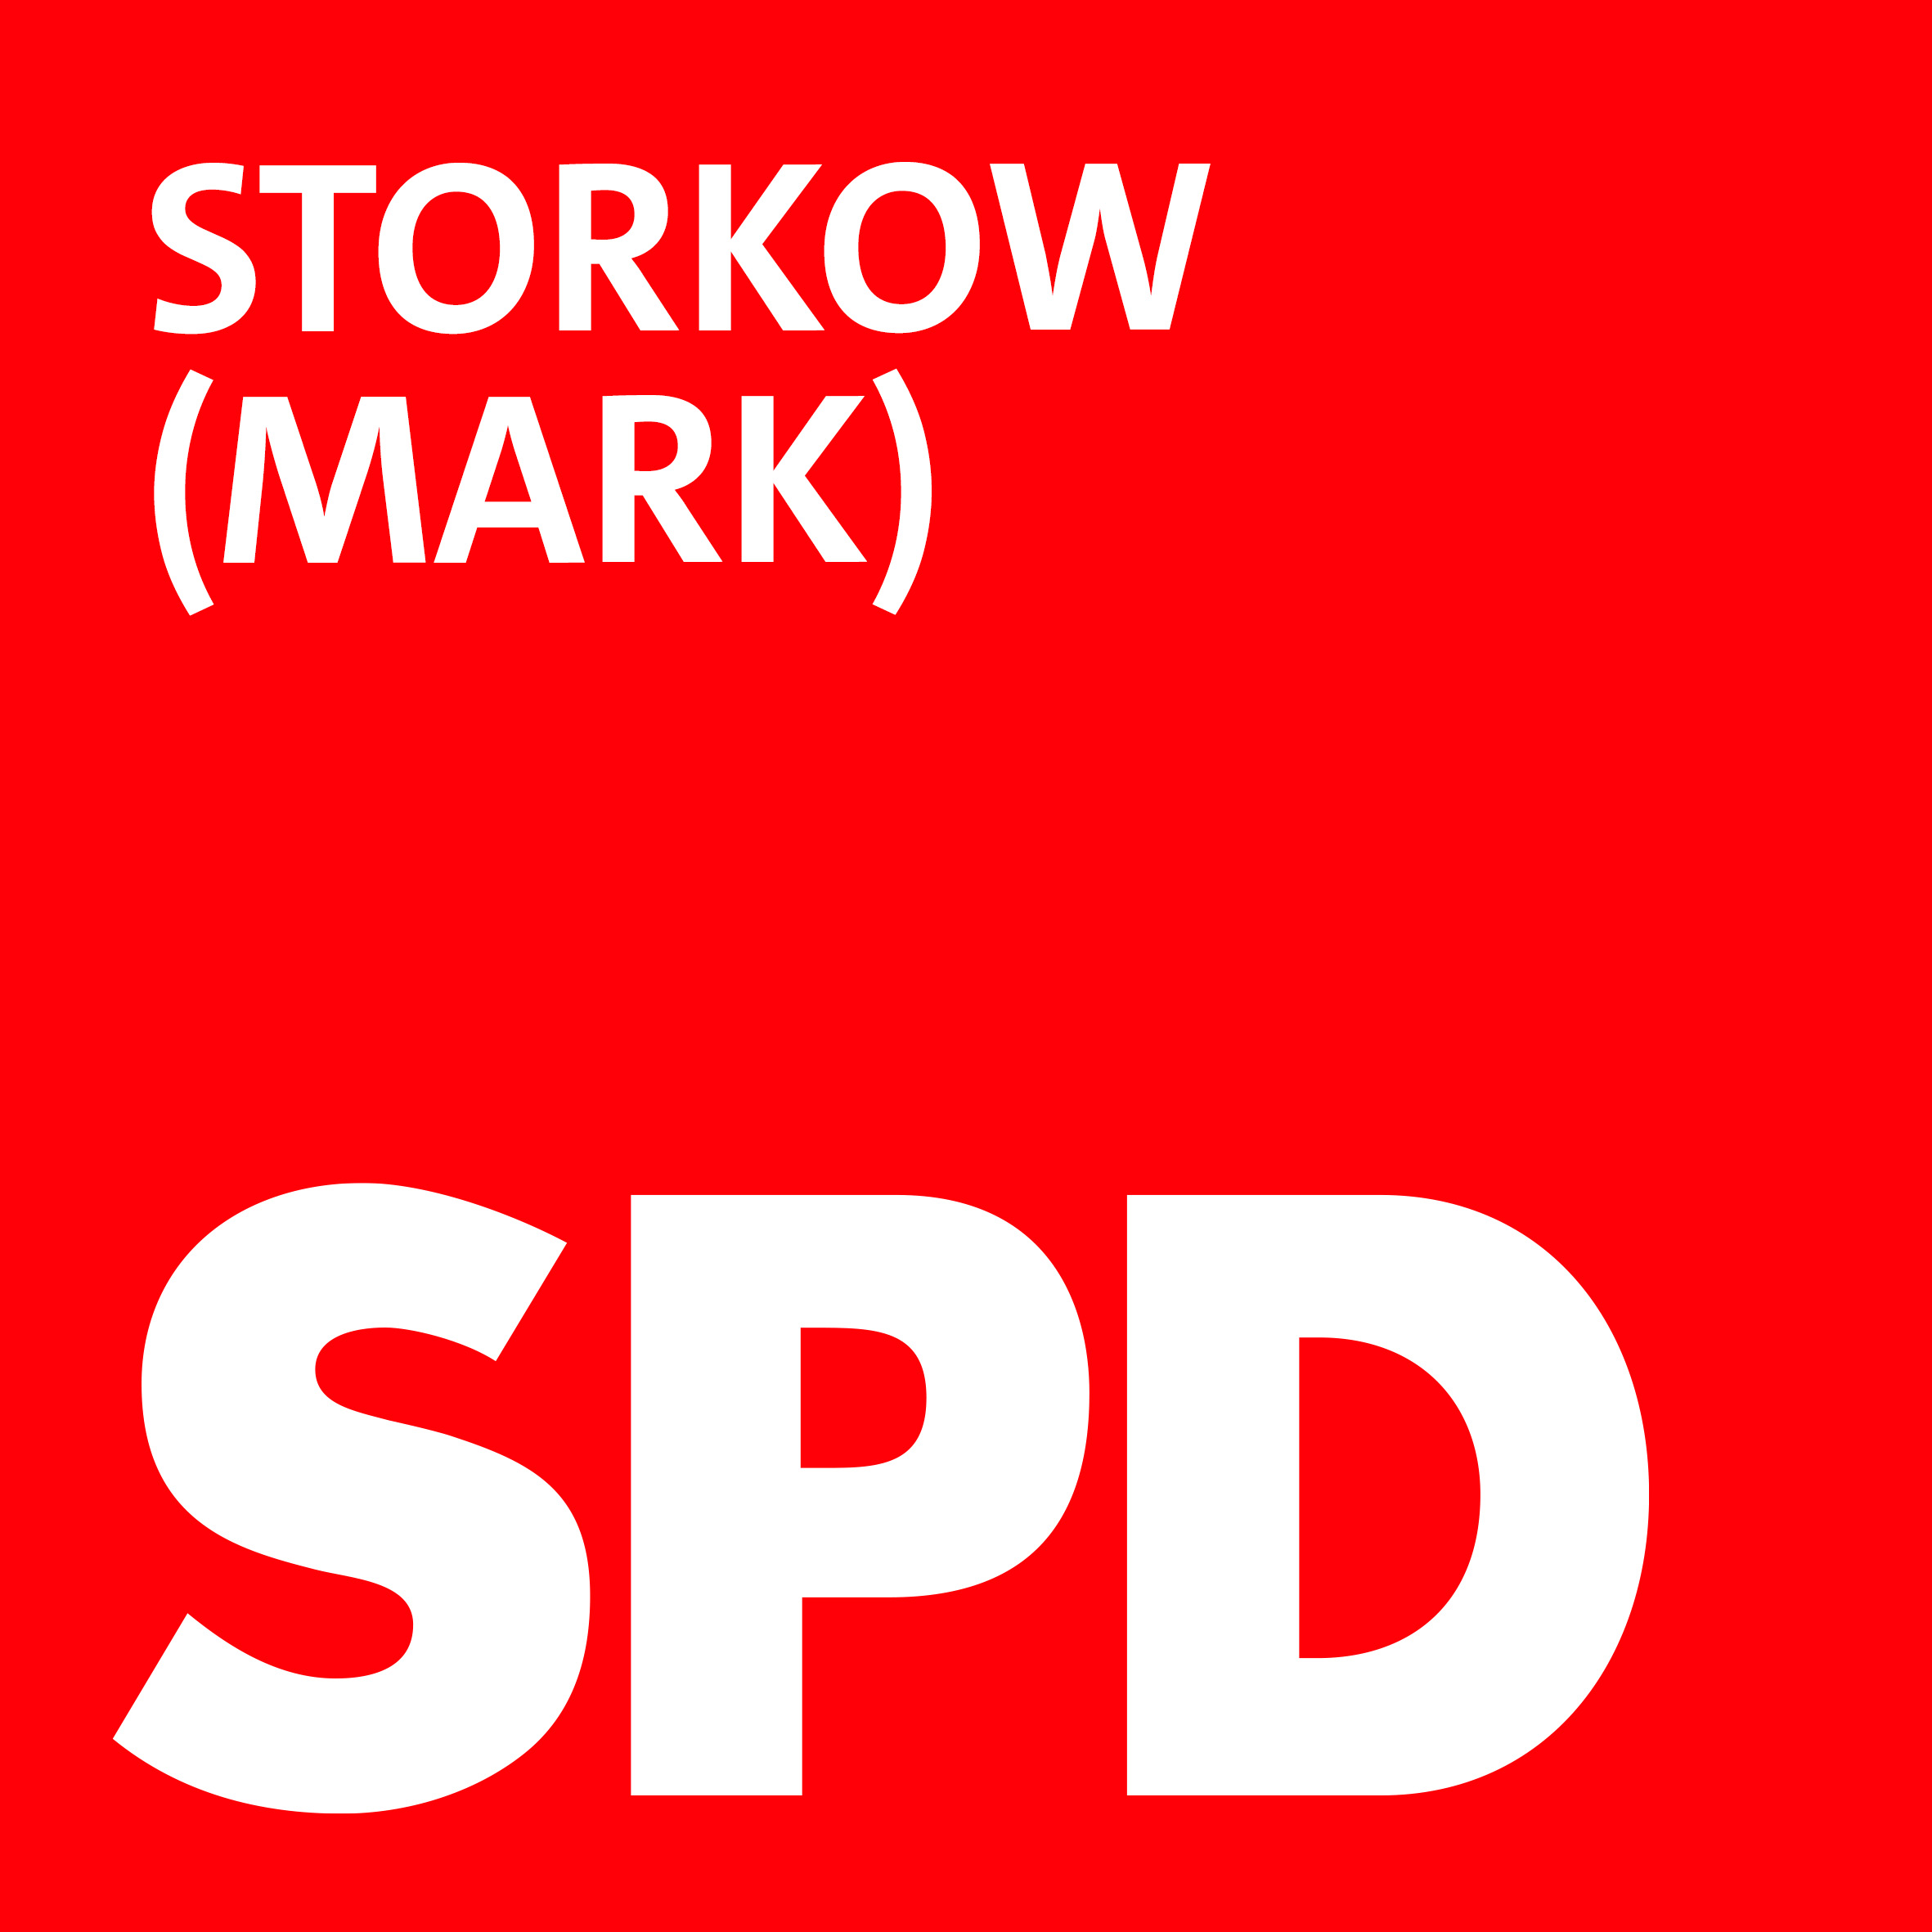 SPD Storkow (Mark)